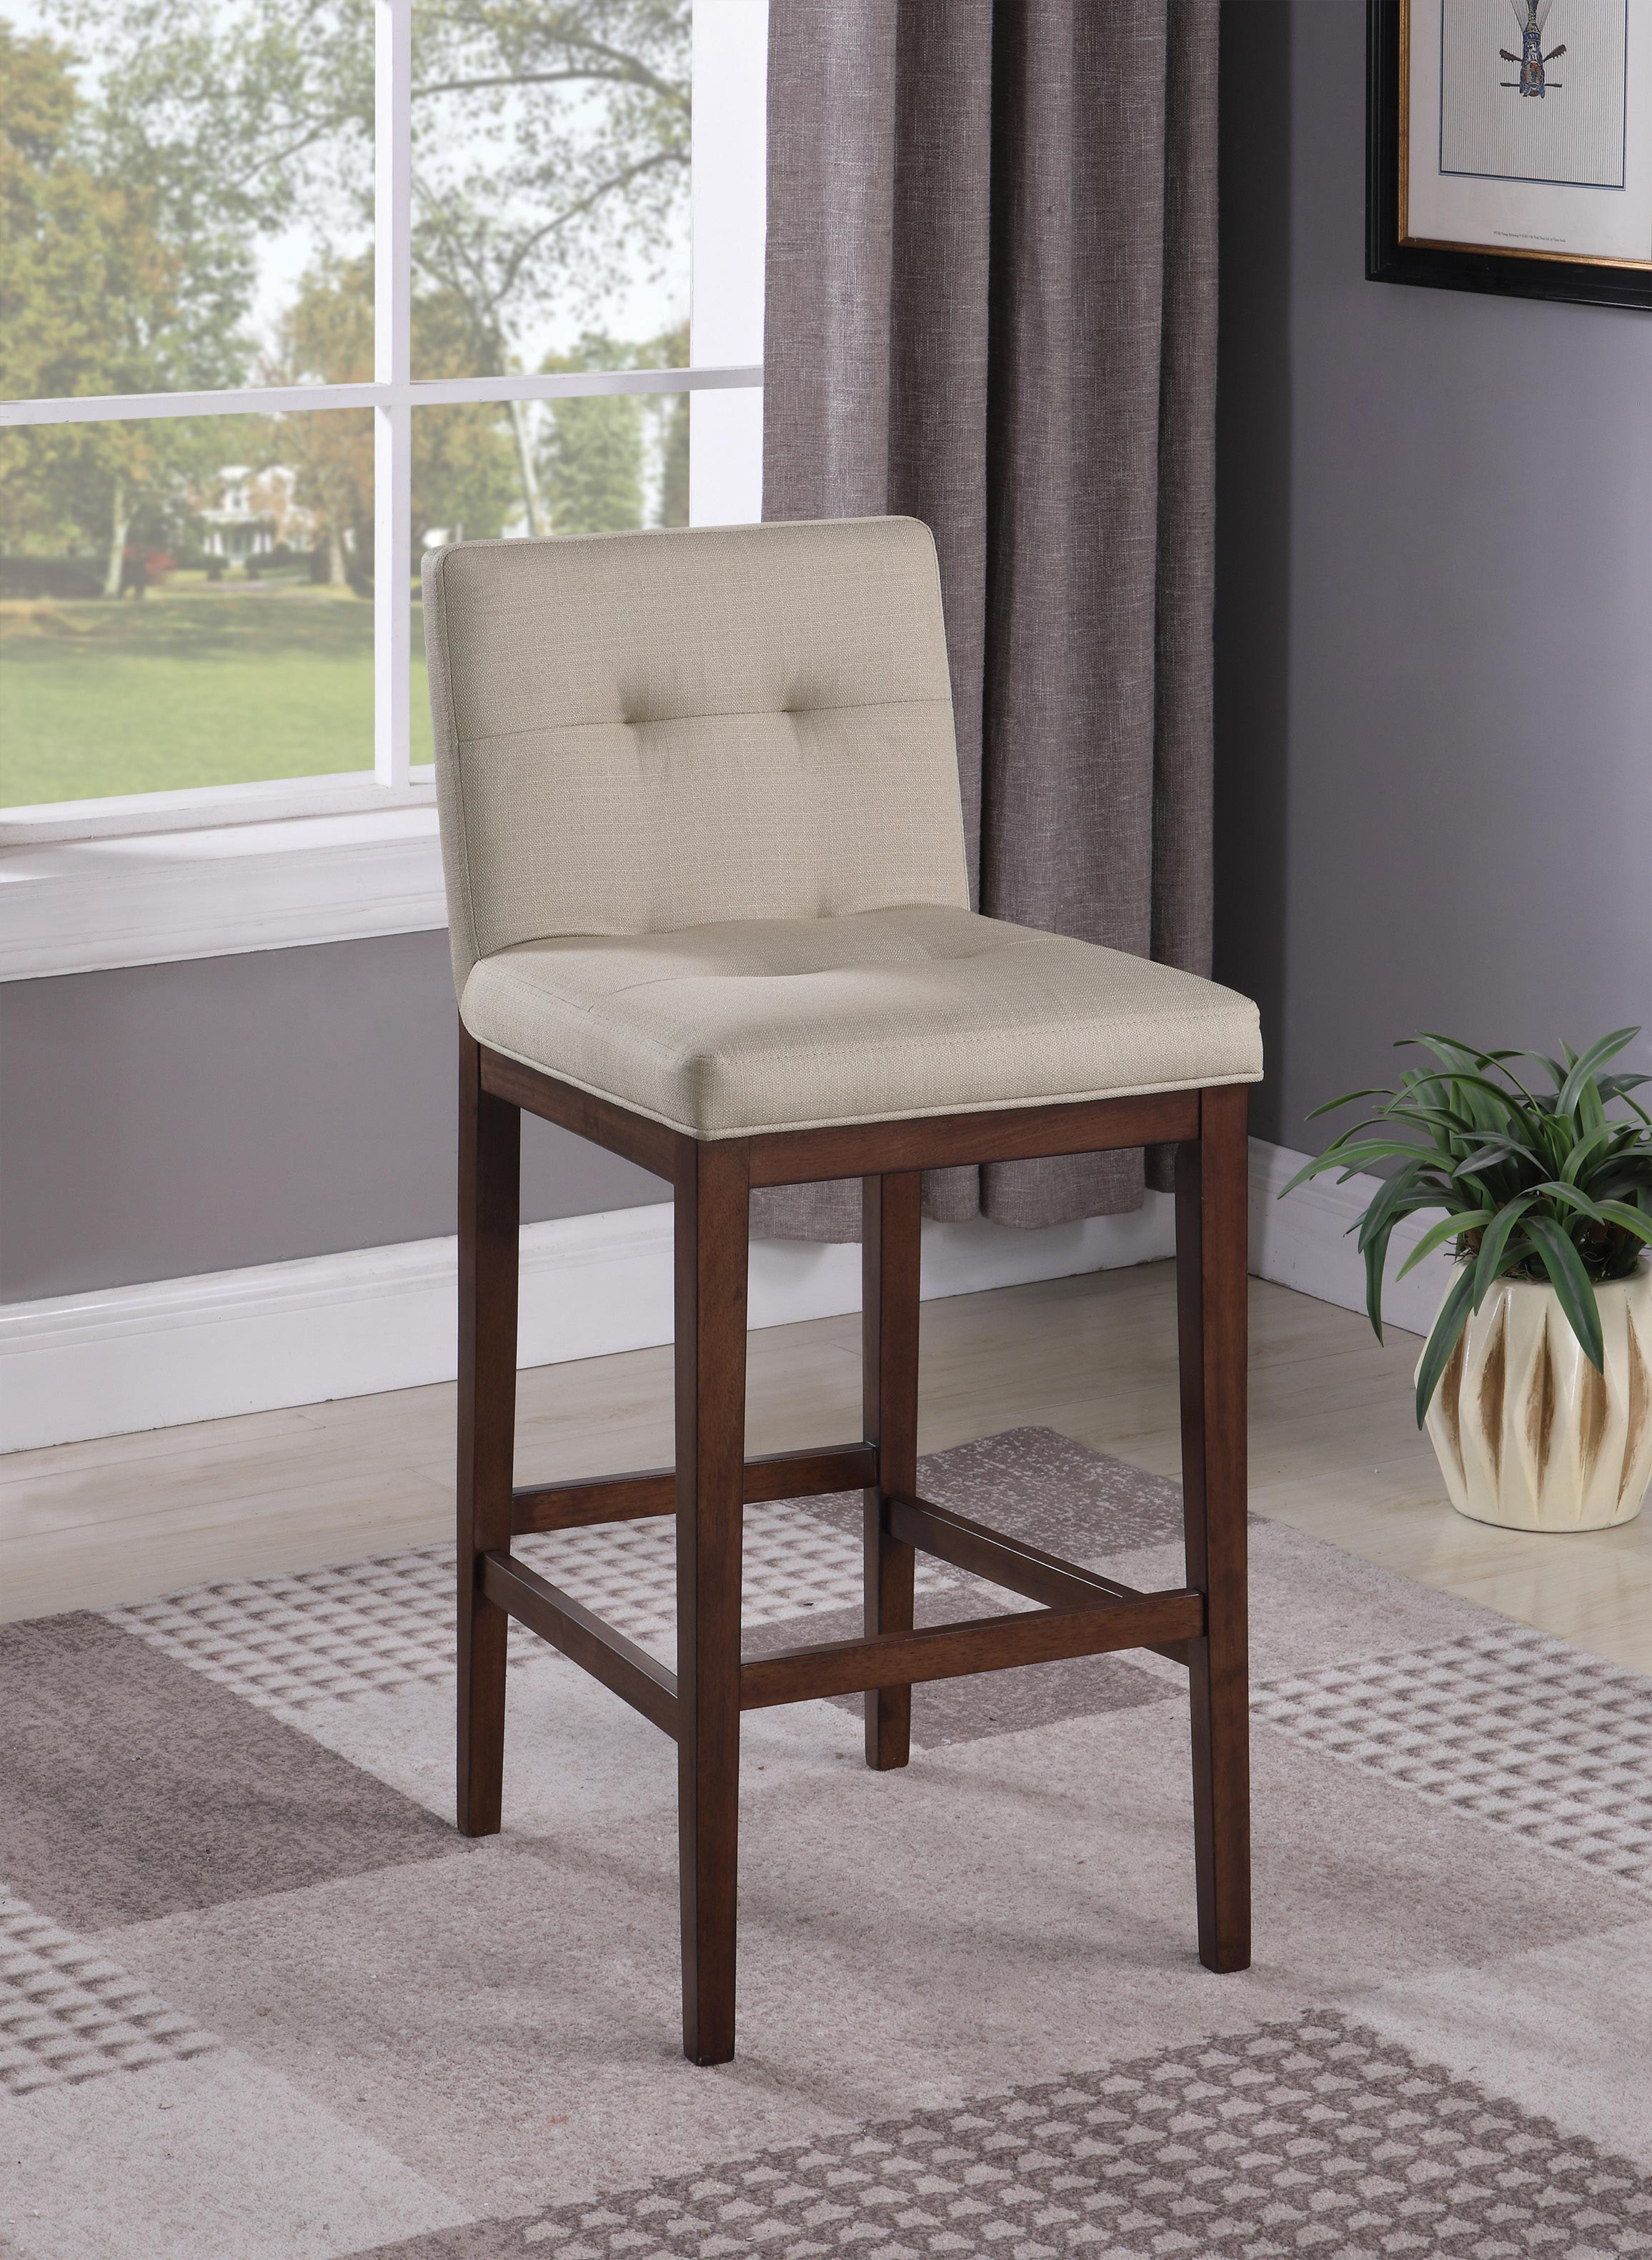 Astonishing Coaster Furniture Recreation Room Bar Stool In Cappuccino Gmtry Best Dining Table And Chair Ideas Images Gmtryco